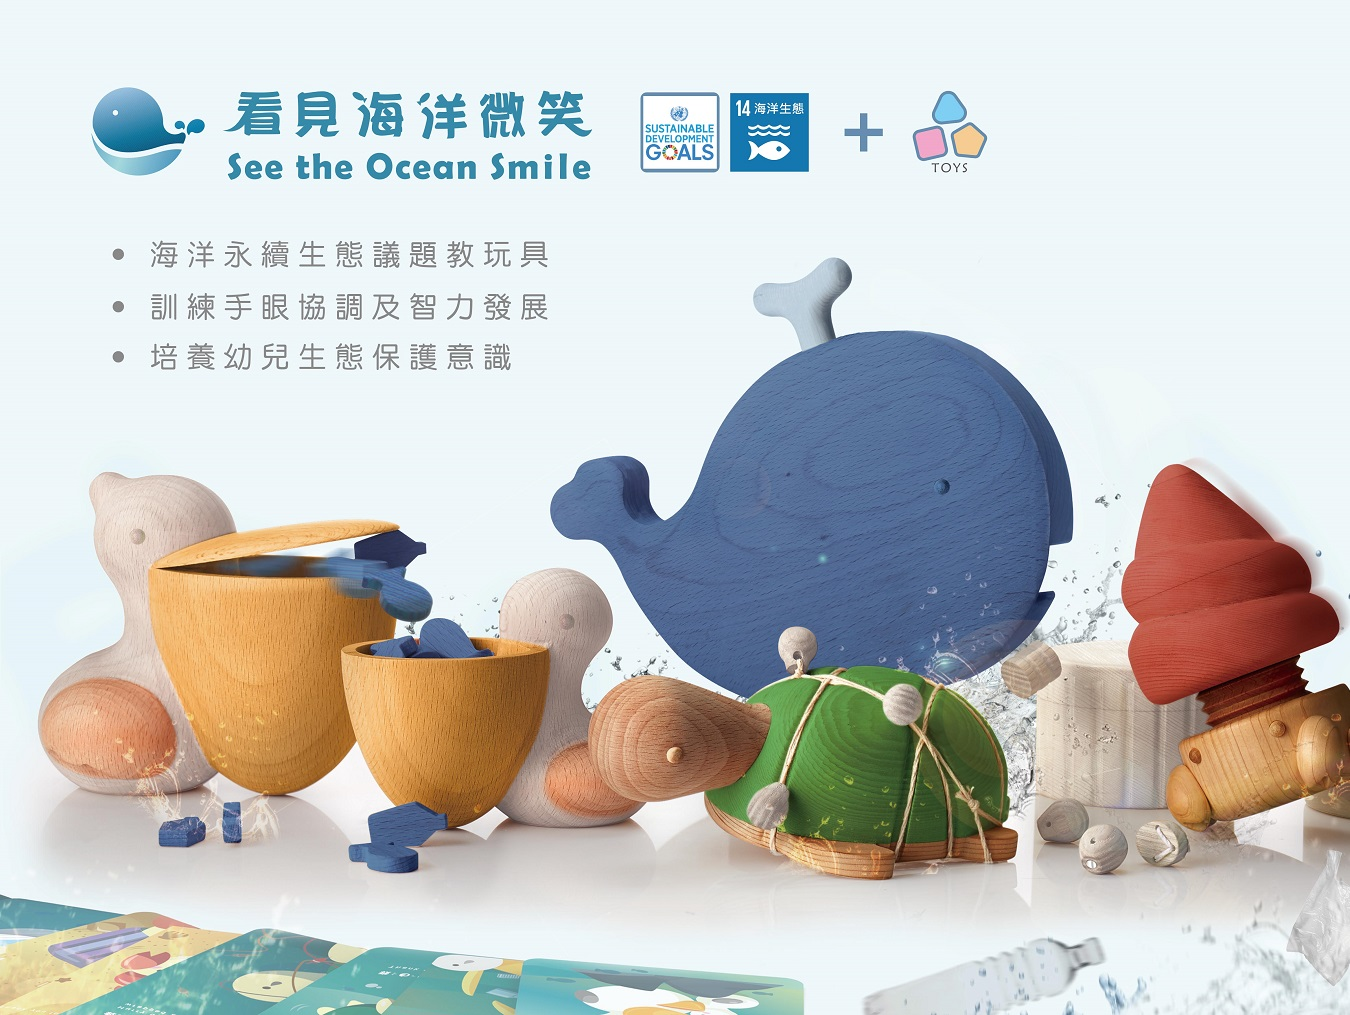 Golden Pin Design Award celebrates World Industrial Design Day 2019 with See the Ocean Smile